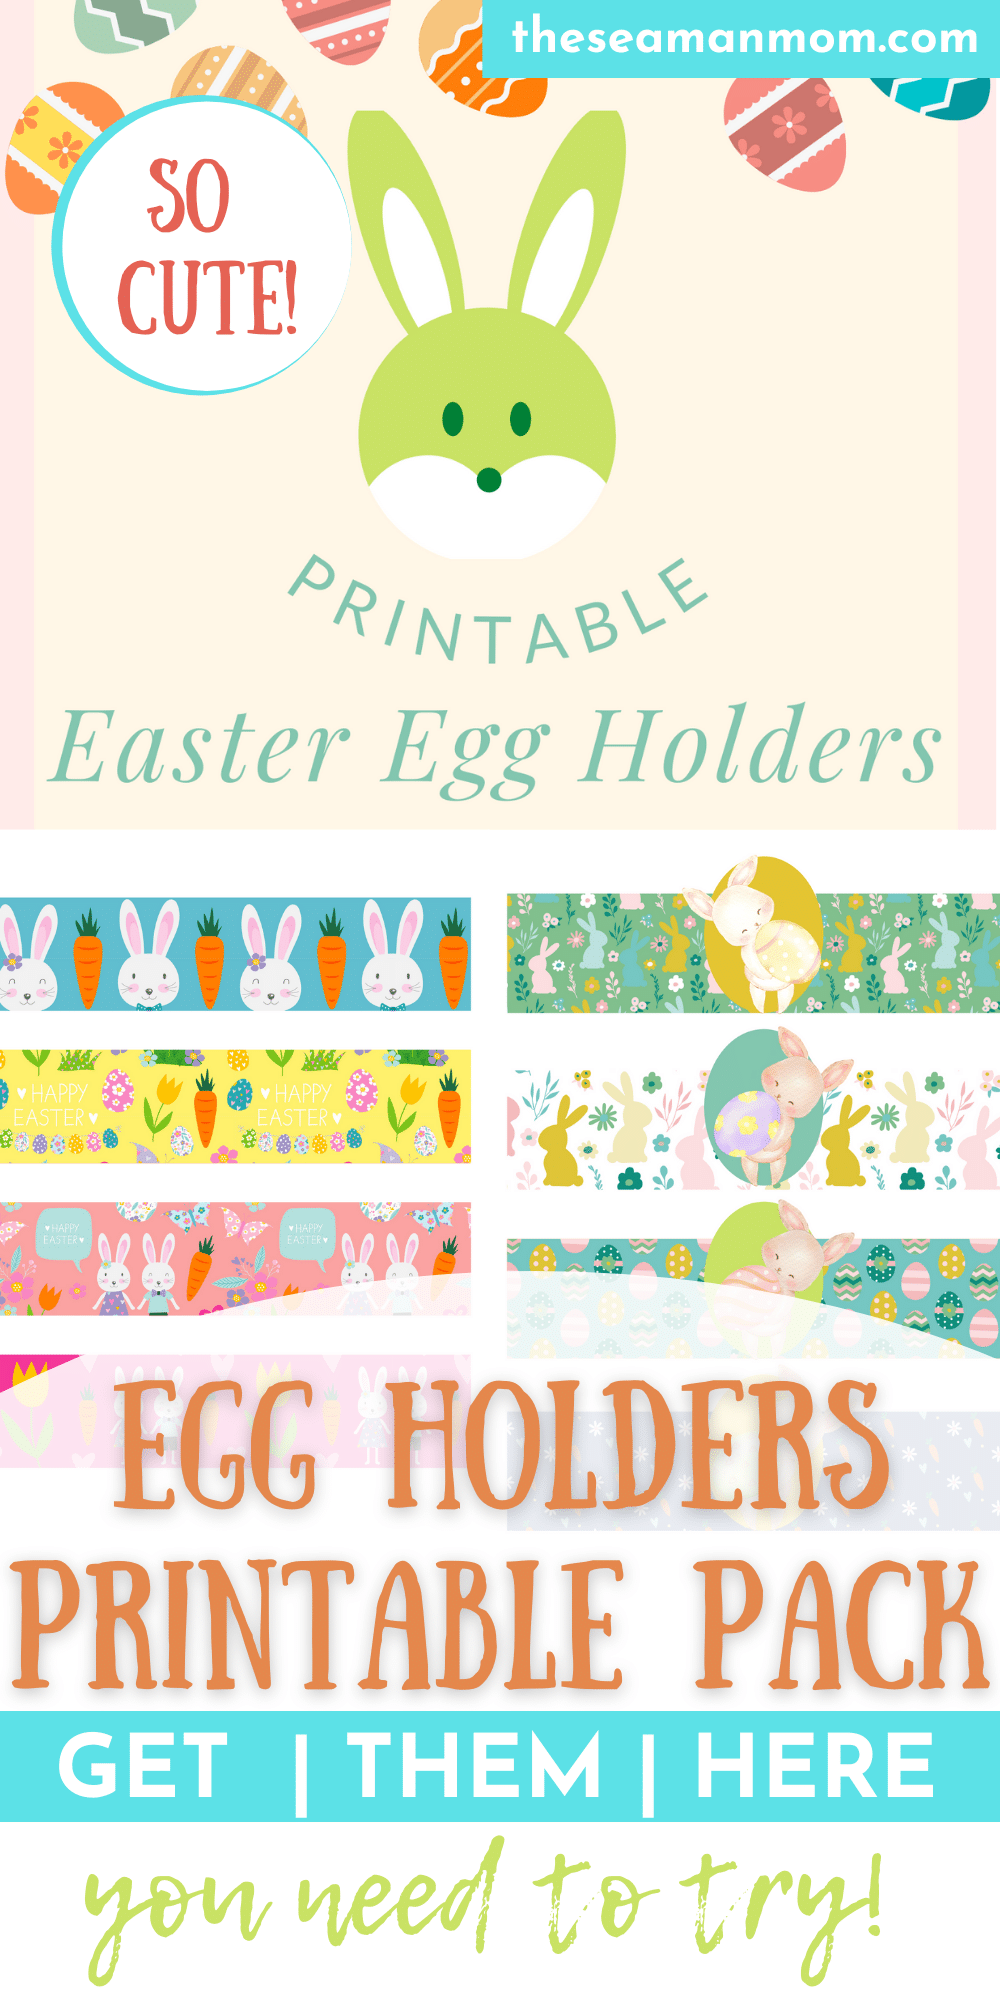 Print out these adorable Easter egg holders and have fun with the kids this Easter! These cute printable egg holders are ready for you and your kids to cut out and fold up around your favorite Easter eggs! via @petroneagu